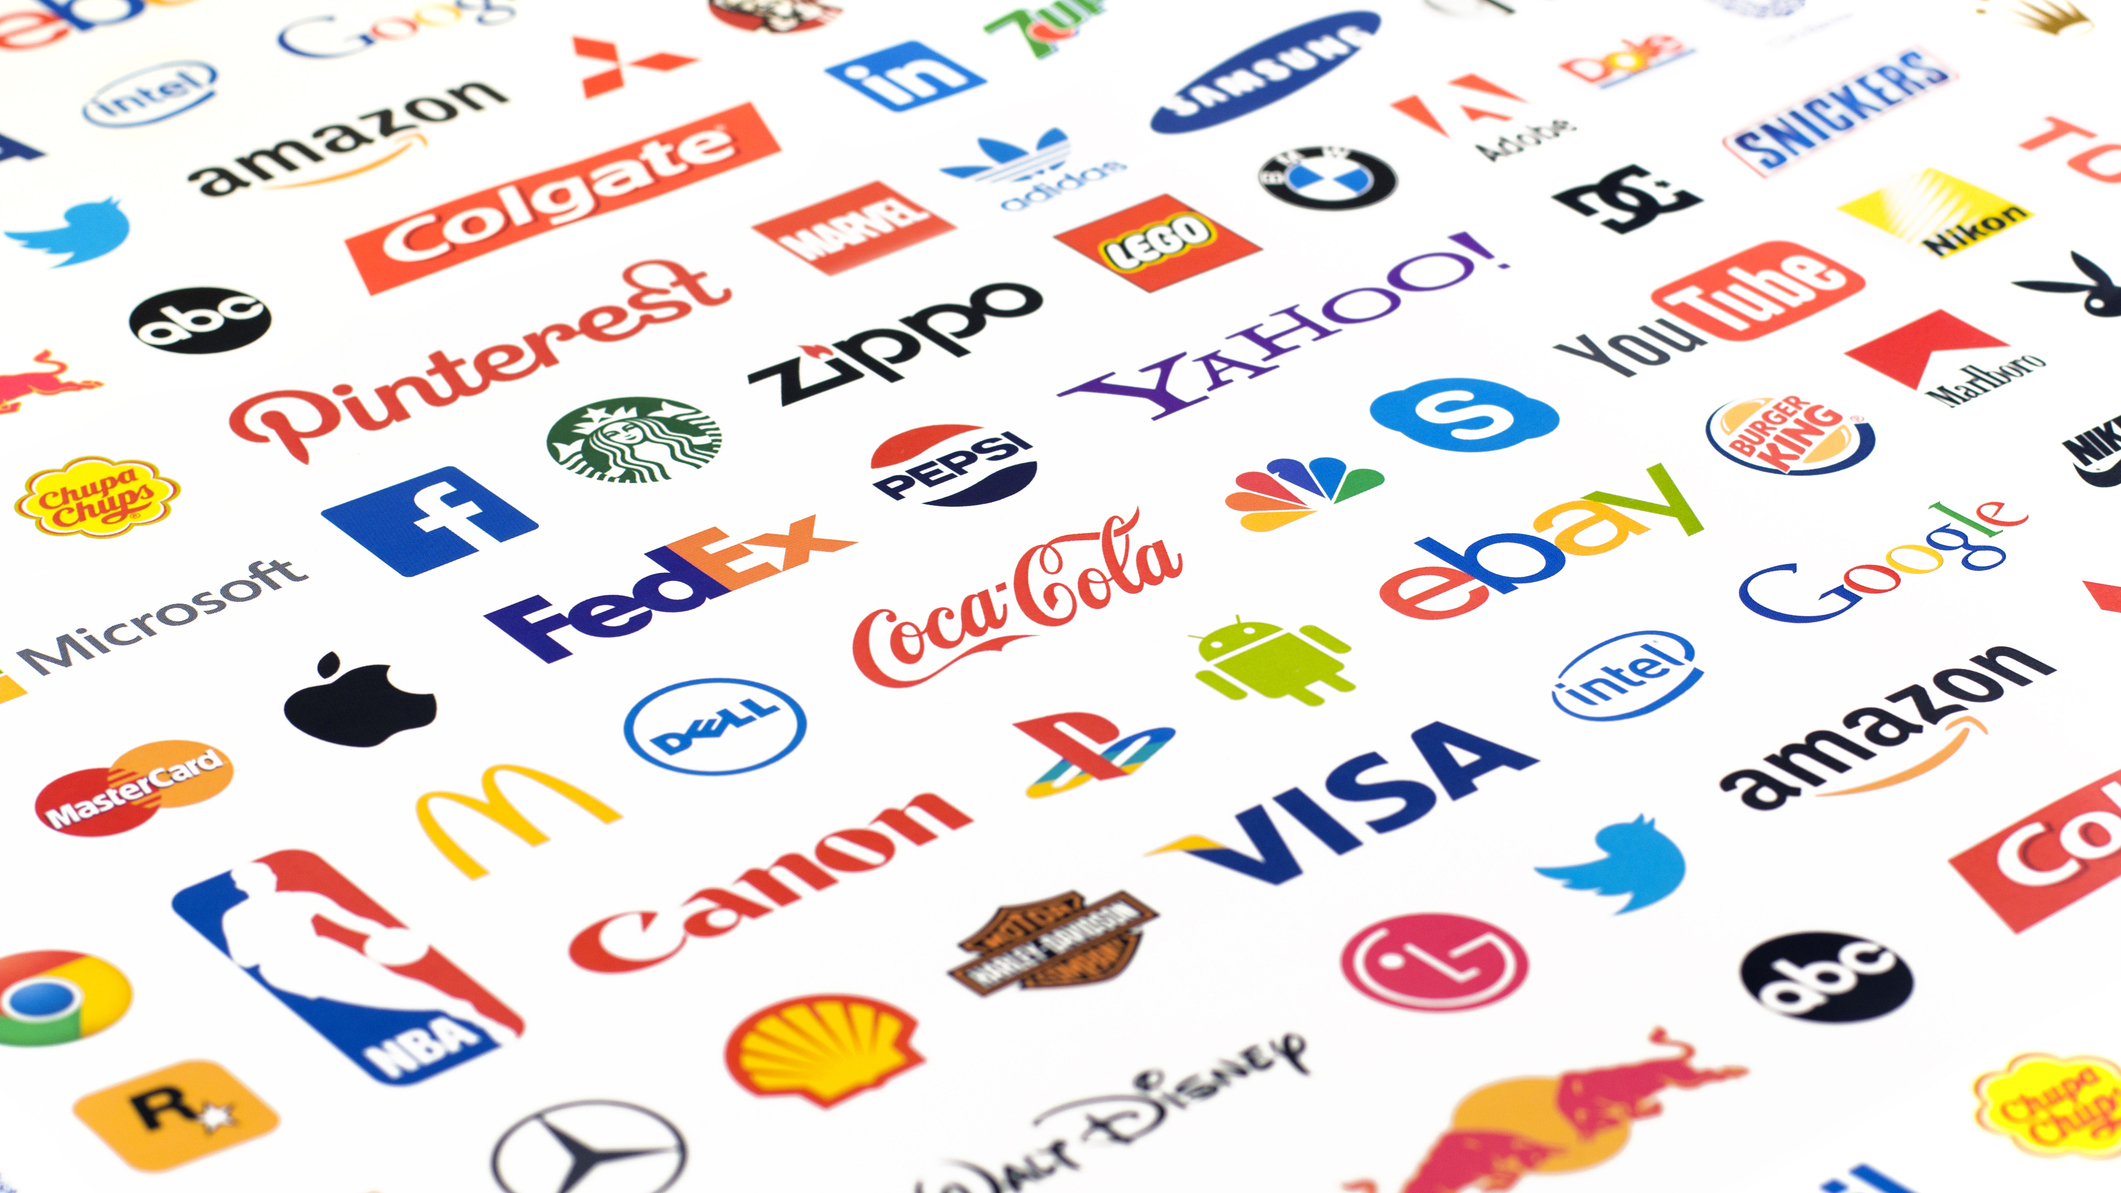 Logo design tips from the pros